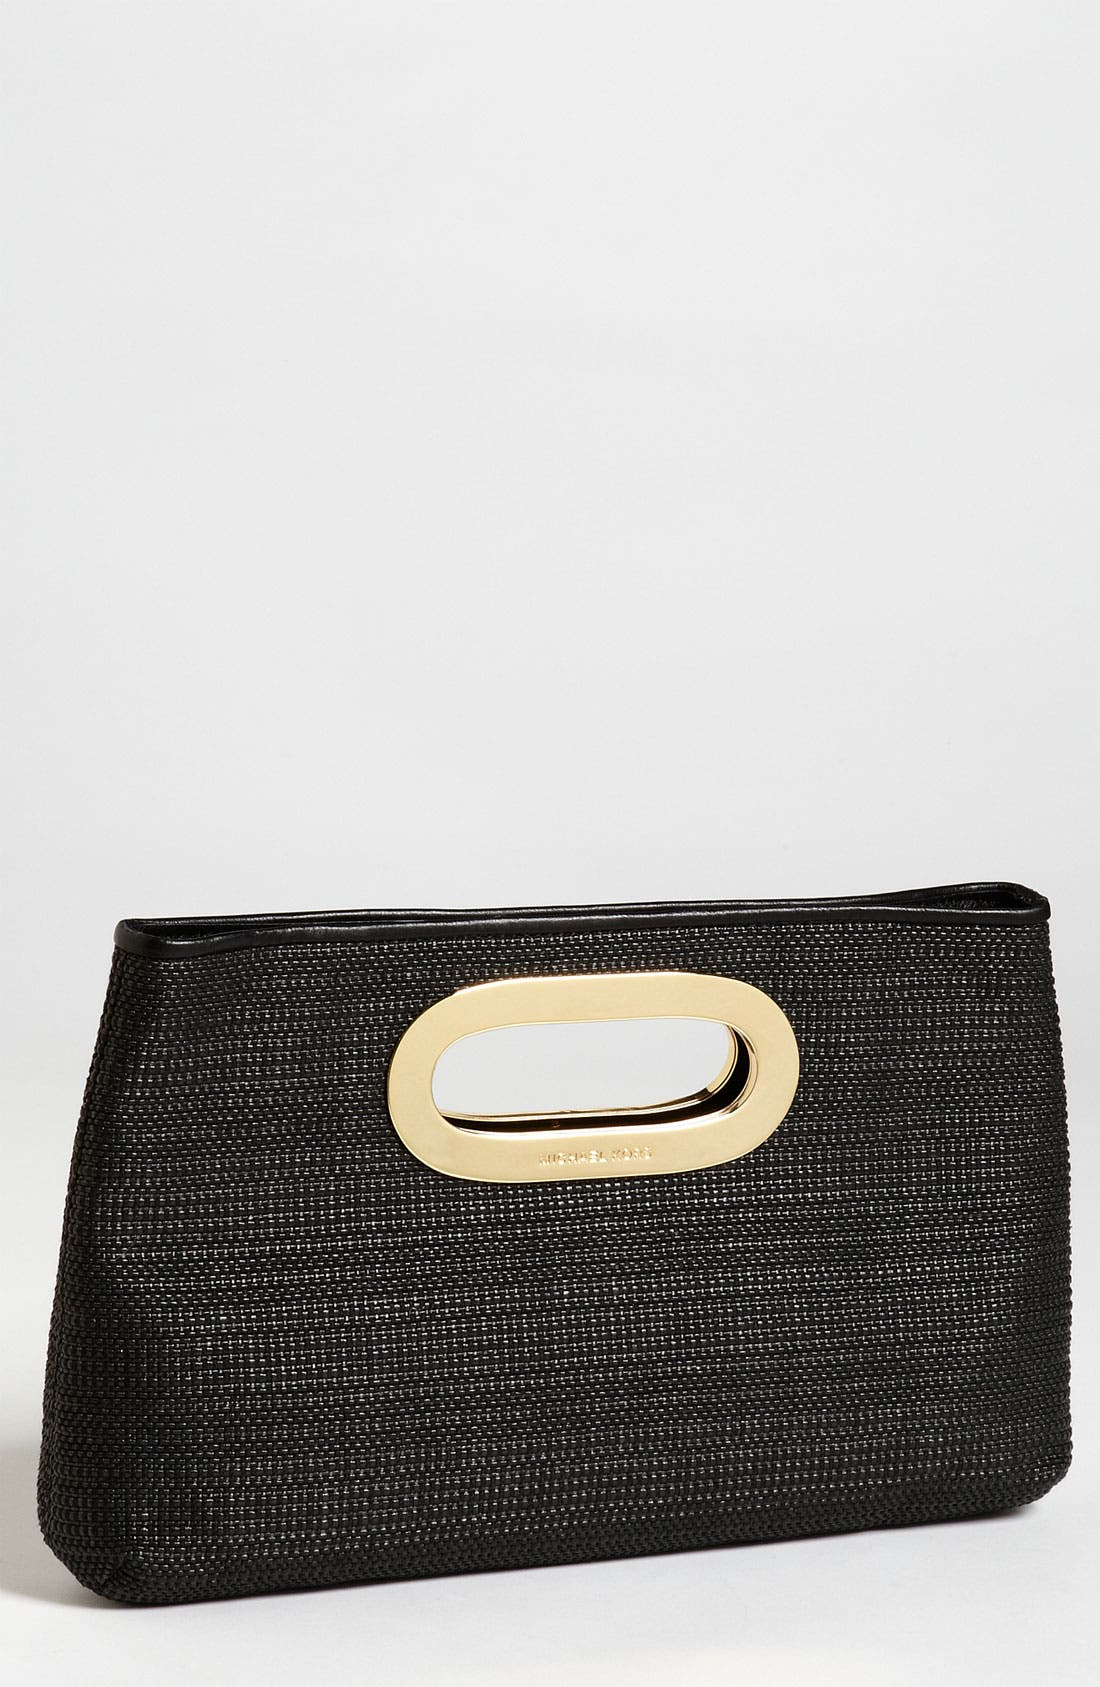 Alternate Image 1 Selected - MICHAEL Michael Kors 'Berkley' Straw Clutch